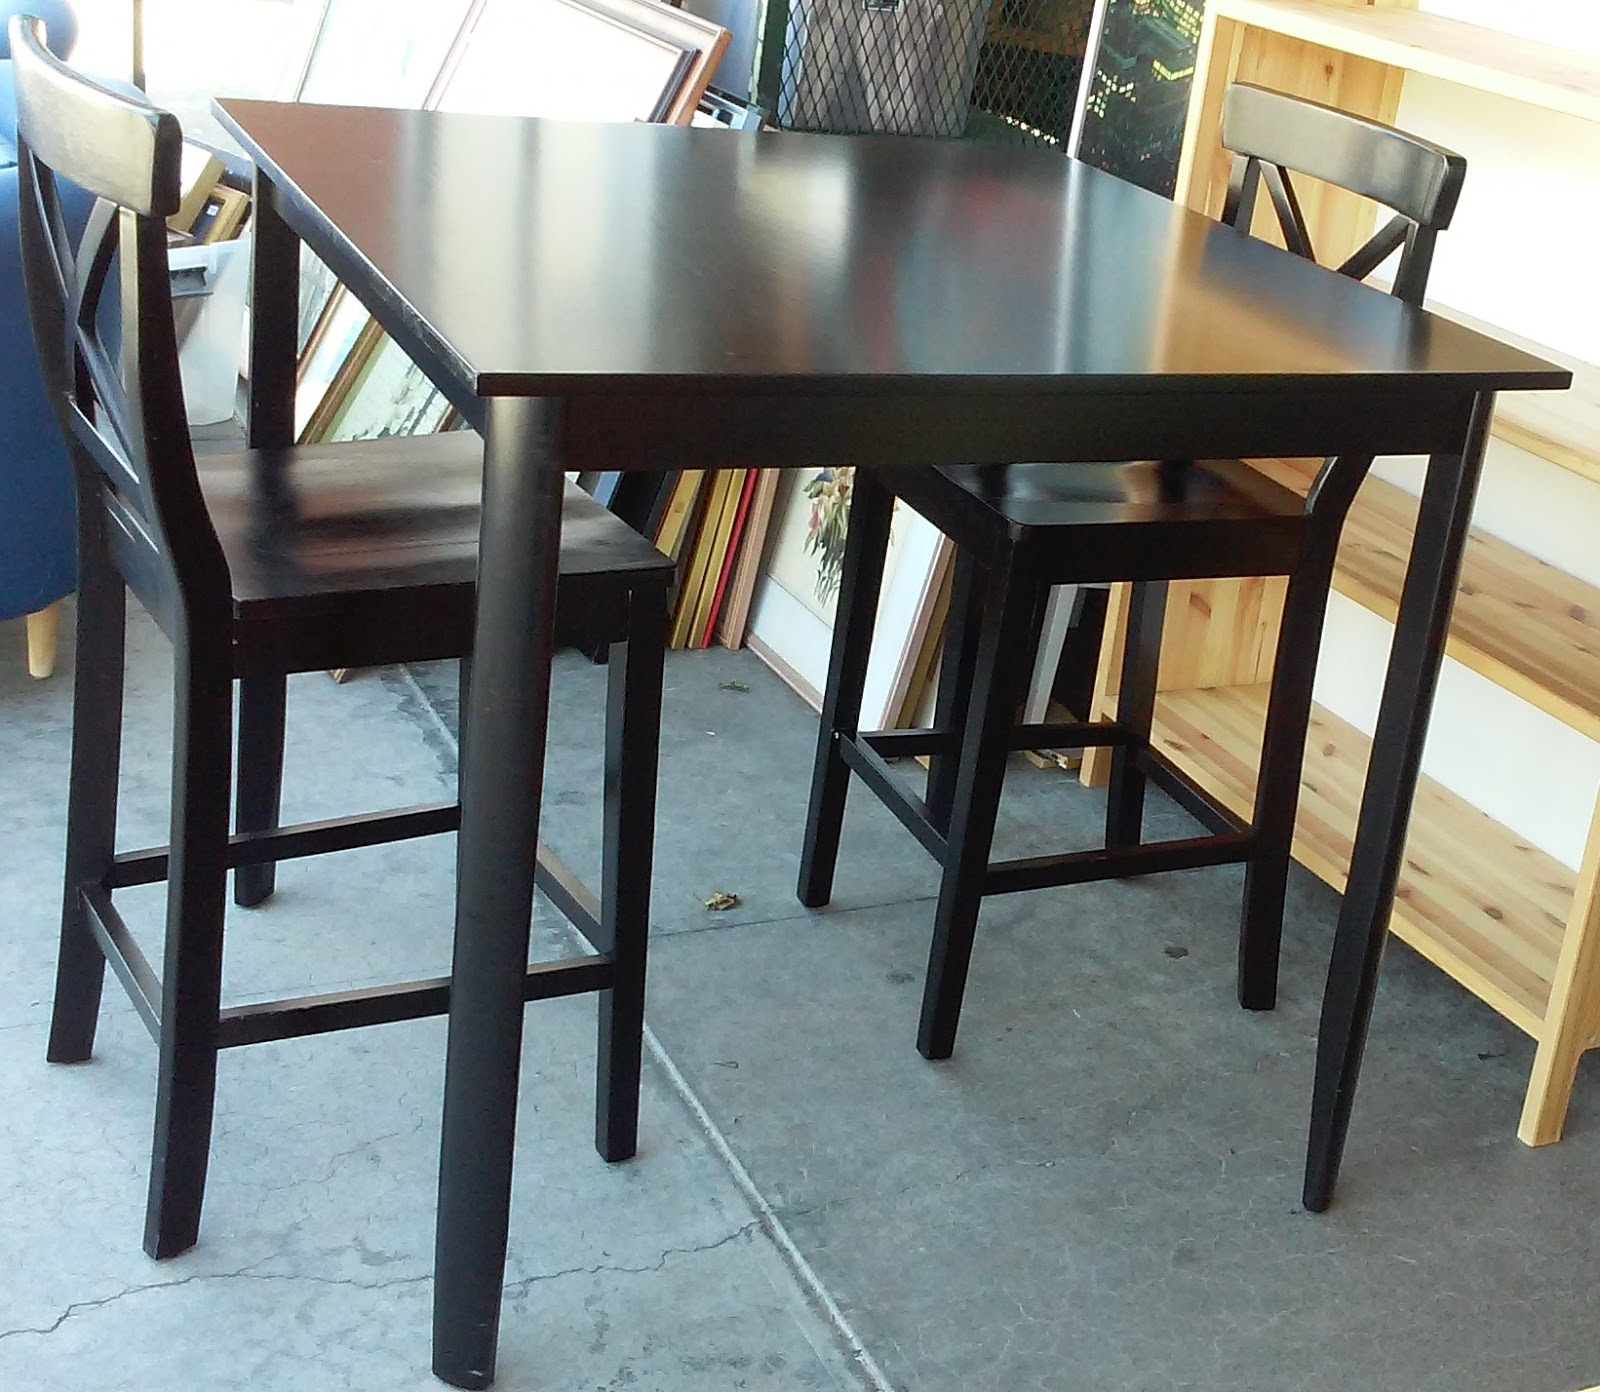 Sold 3 Foot Tall 39 Square Bistro Set Table 2 Stools 120